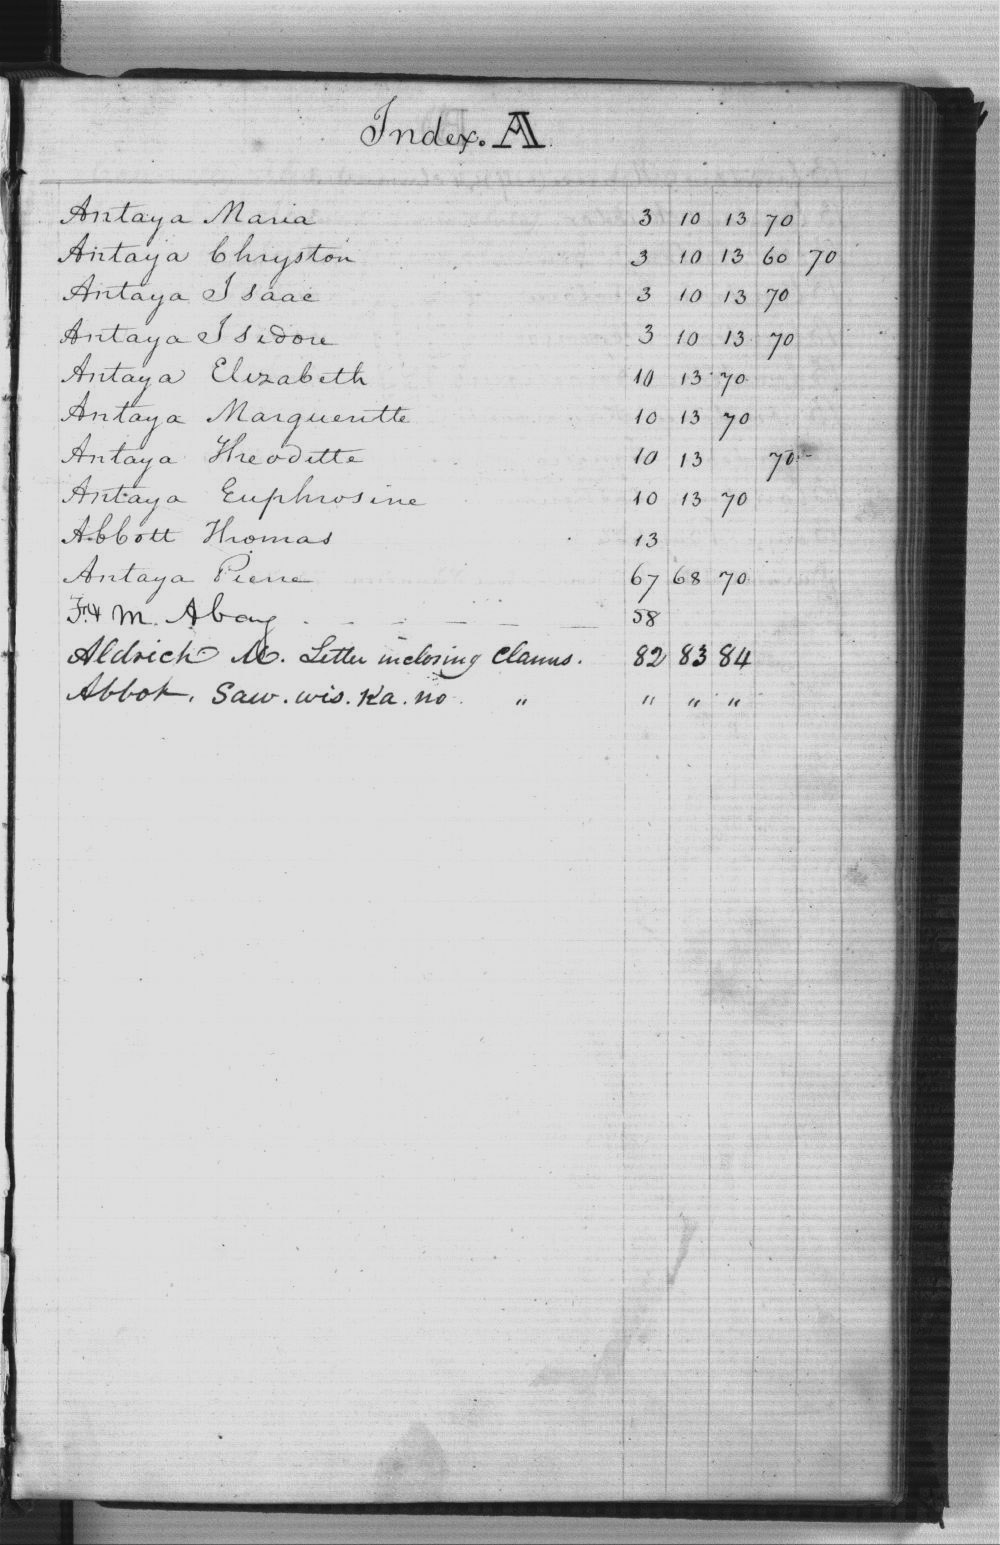 United States Office of Indian Affairs, Central Superintendency, St. Louis, Missouri. Volume 32, Claims under 1824 Sac and Fox Treaty - Index A